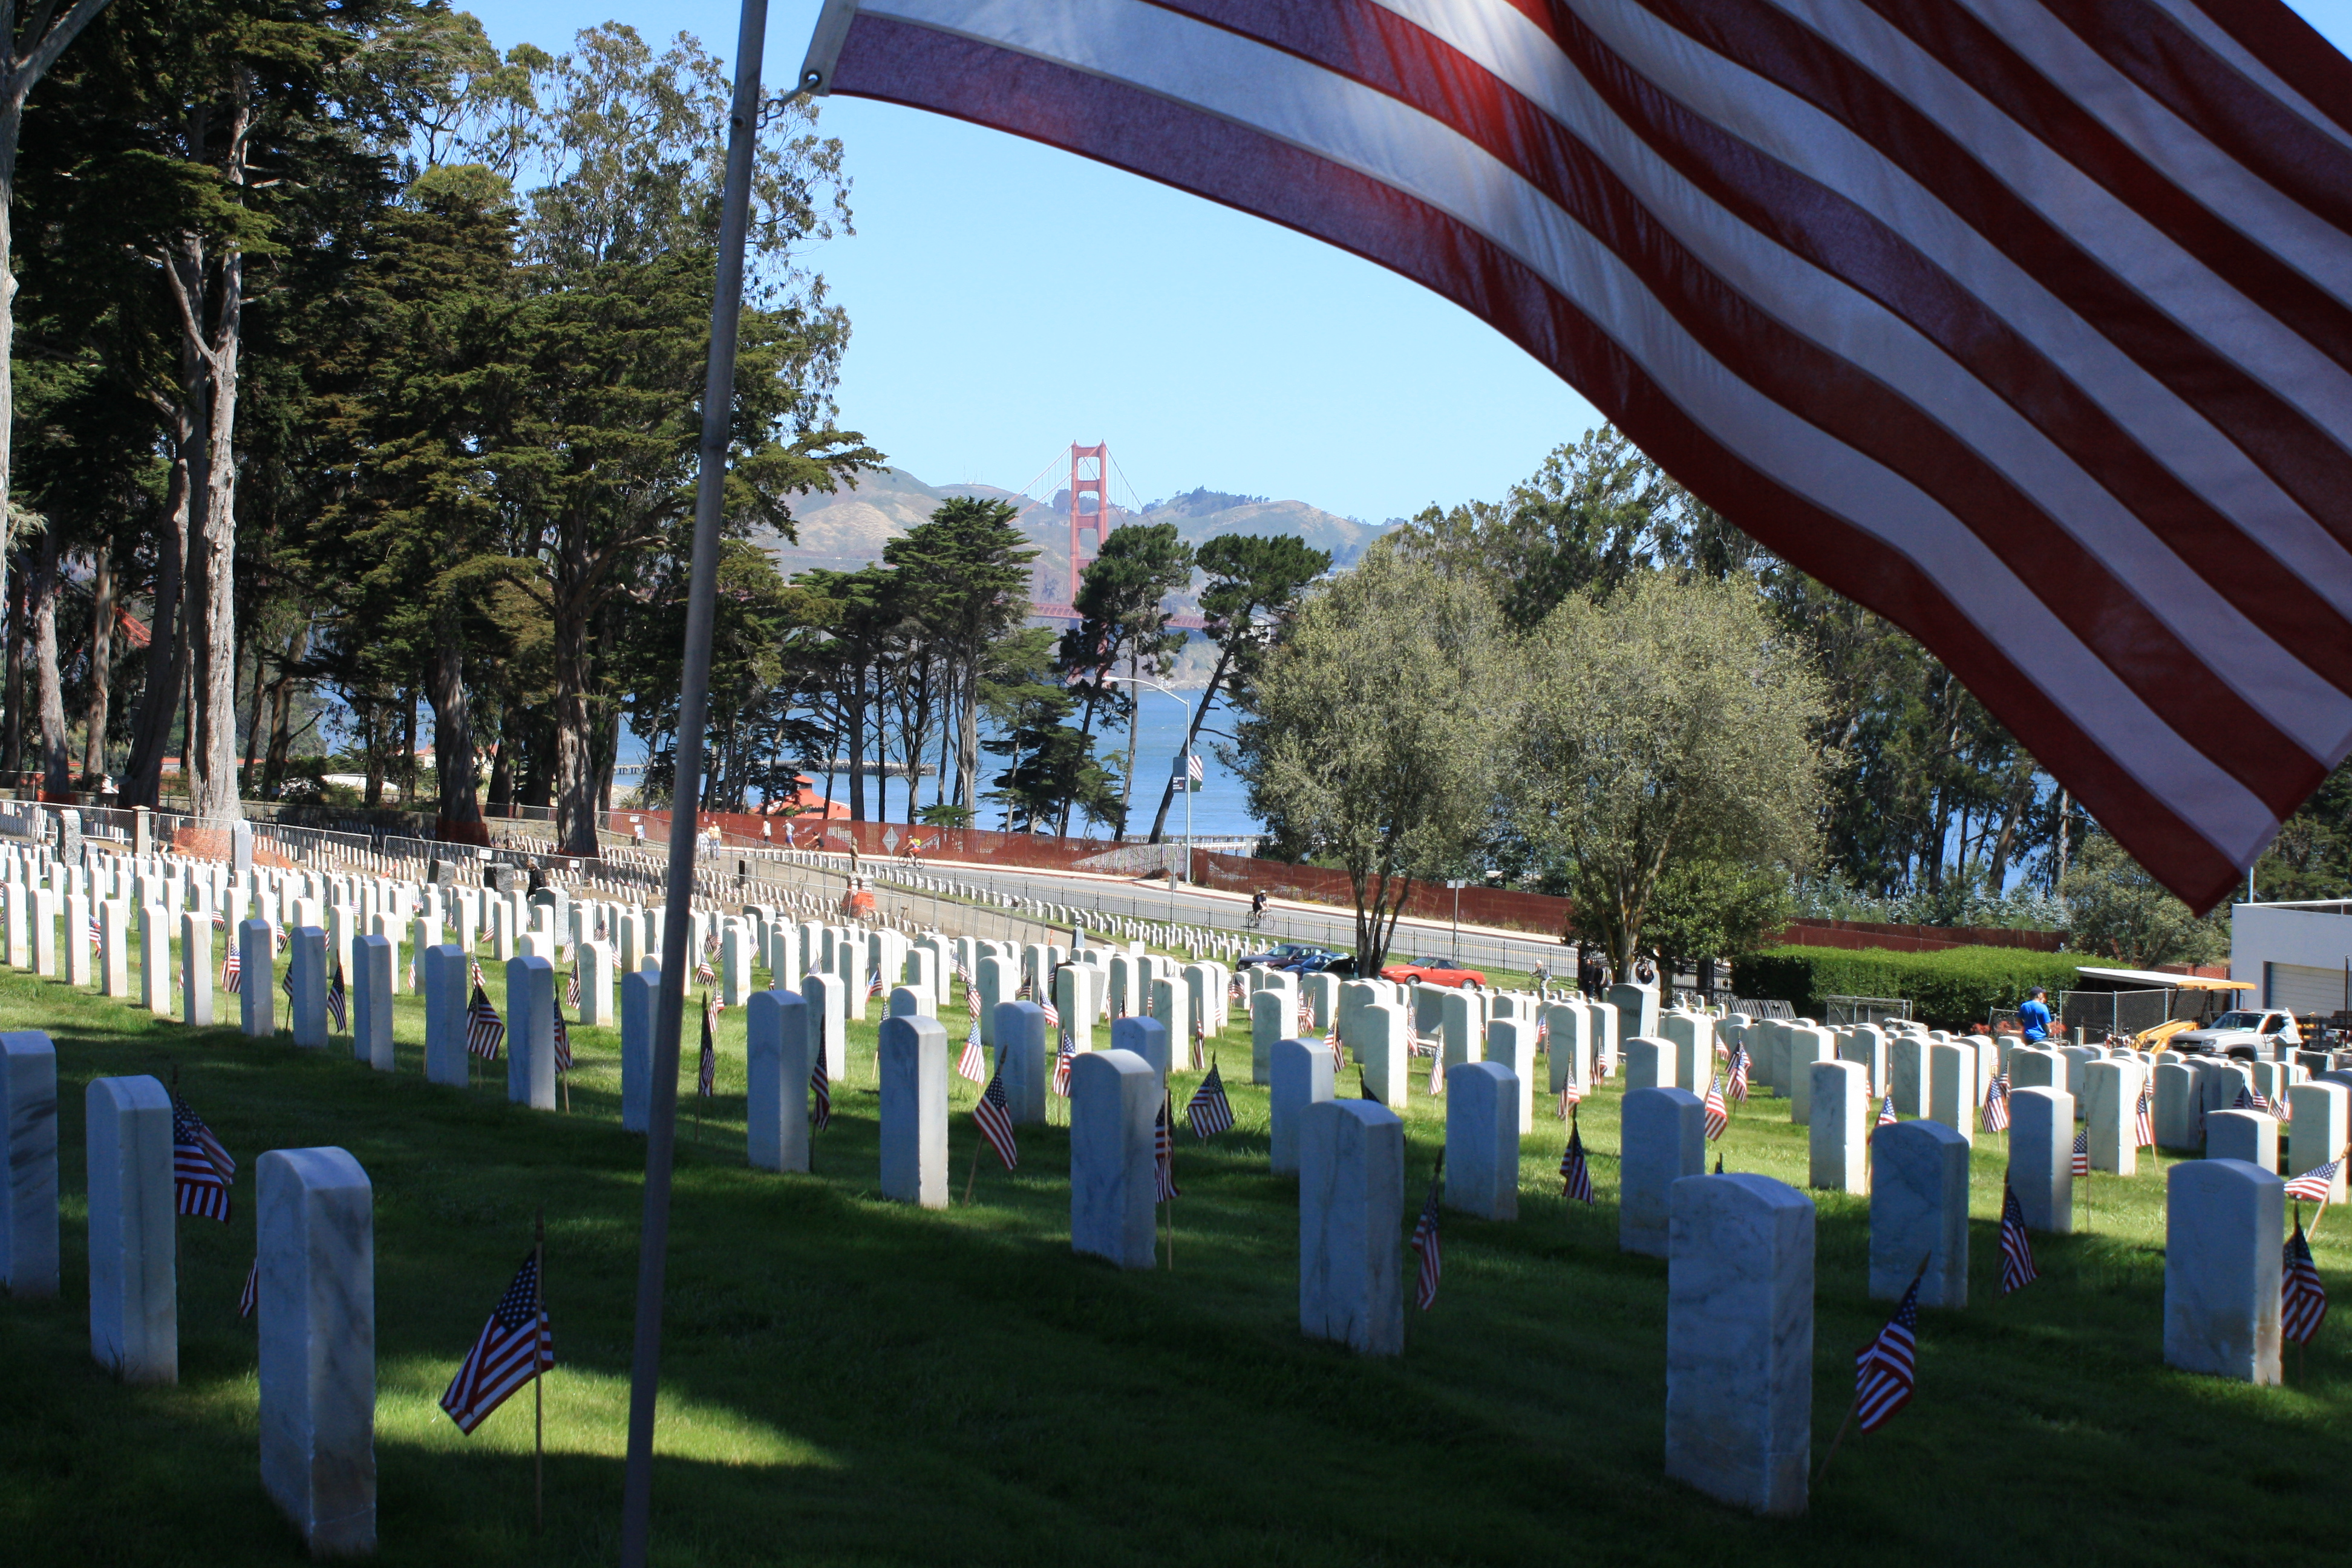 Memorial Day at Presidio San Francisco